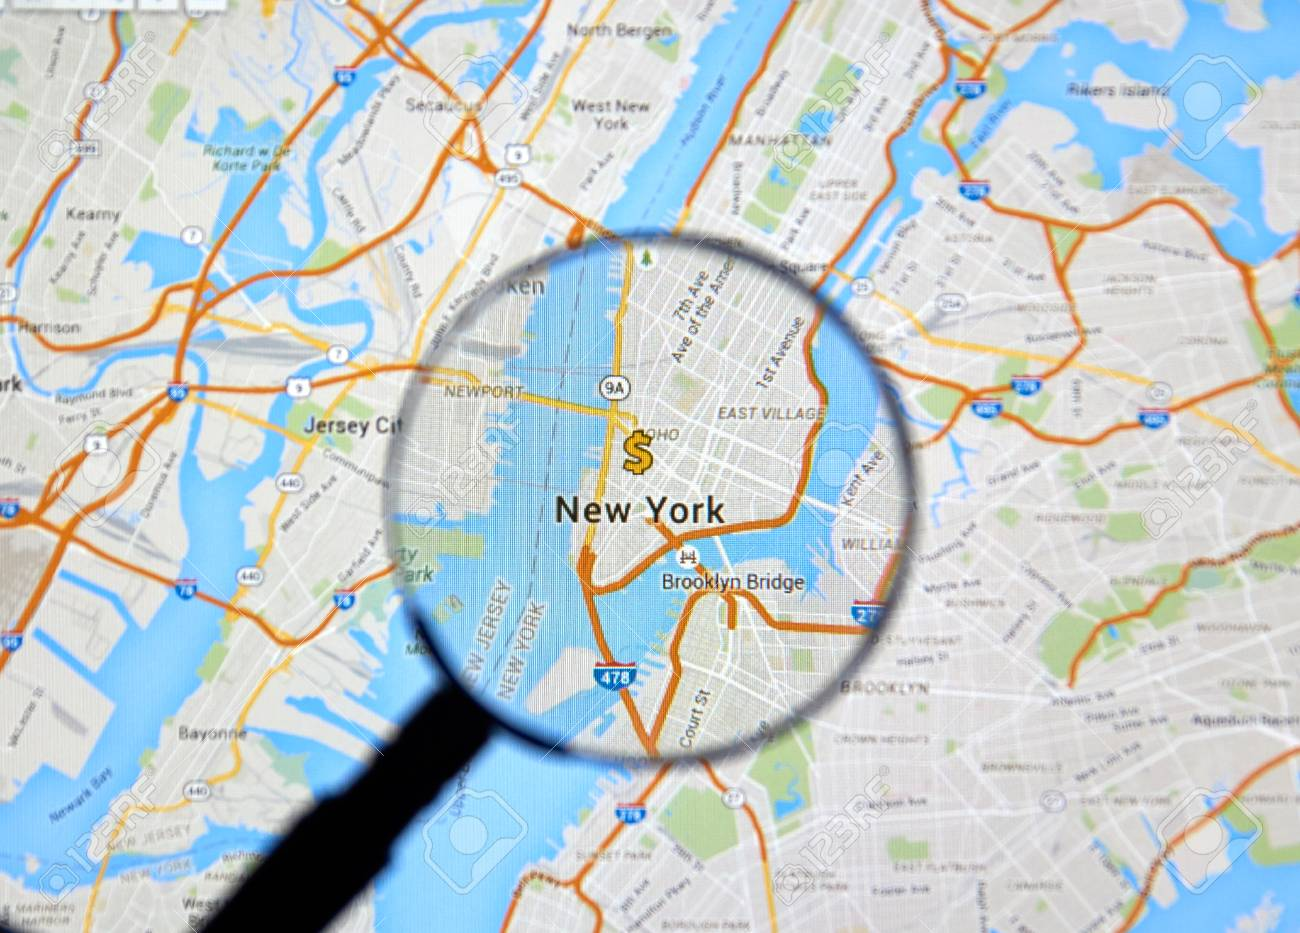 Google Map Of New York City.Montreal Canada February 2016 New York City With Dollar